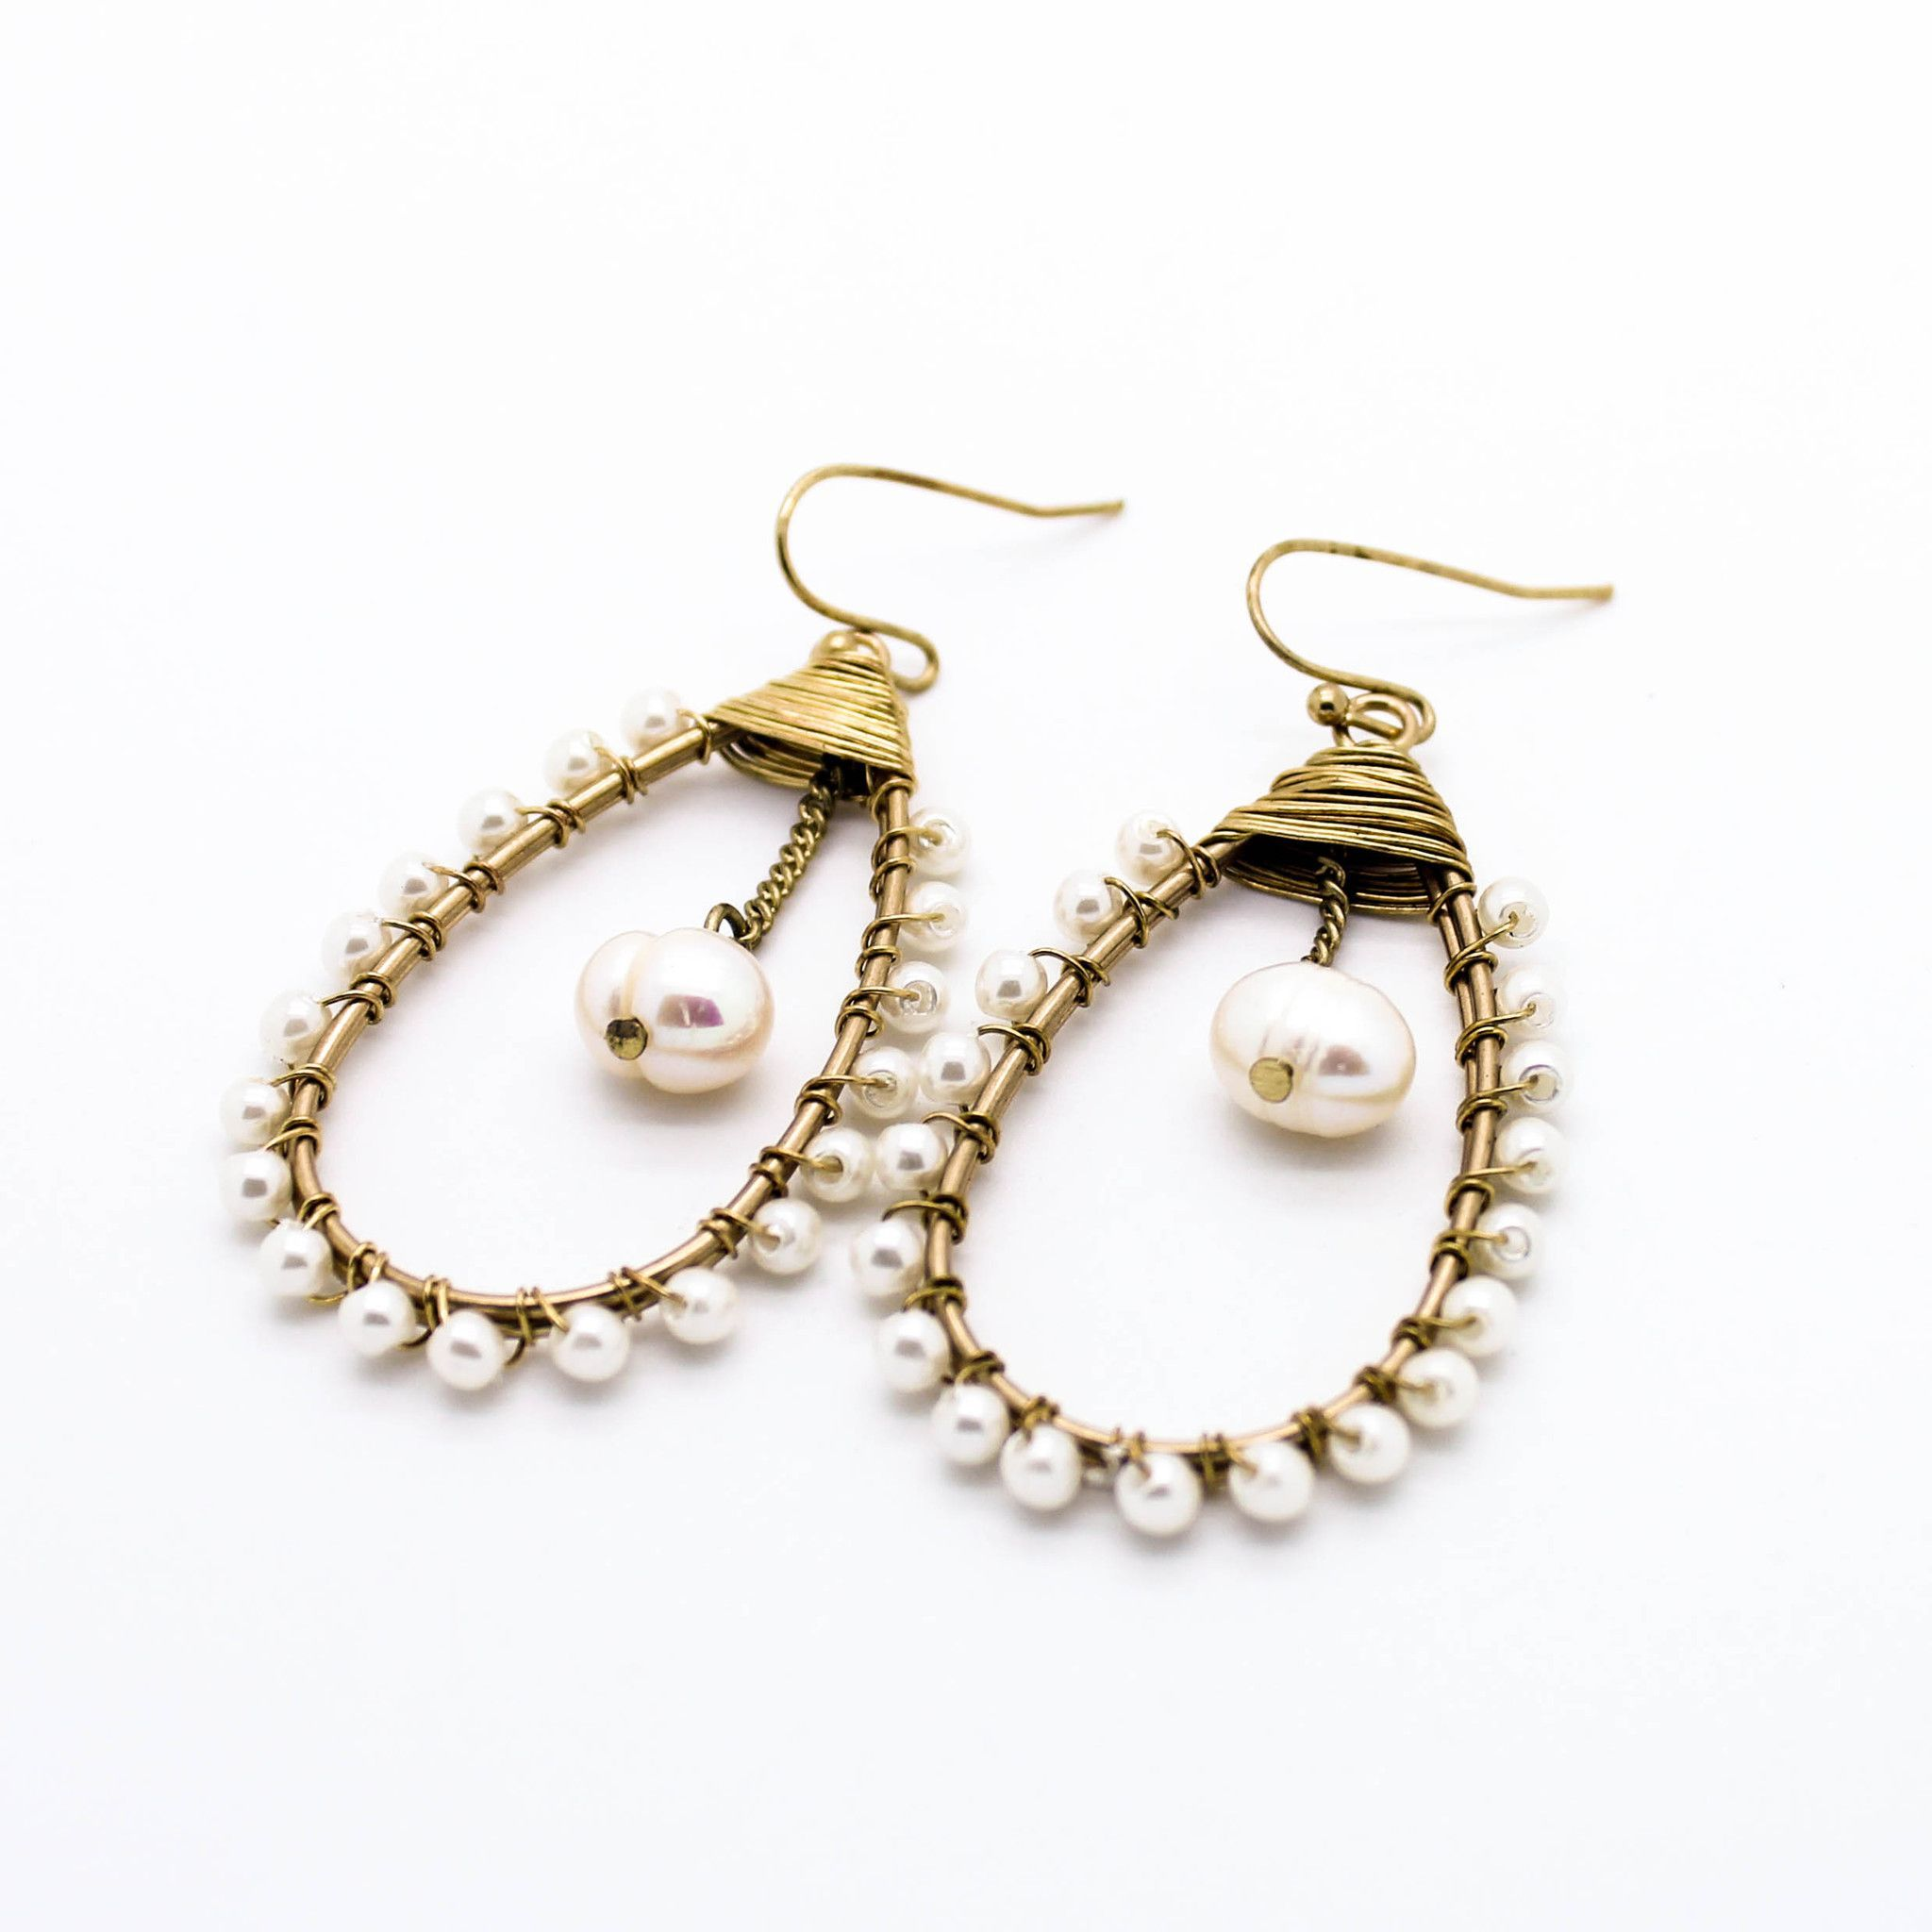 Pearl wire earrings | A 99 class idea | Pinterest | Wire earrings ...